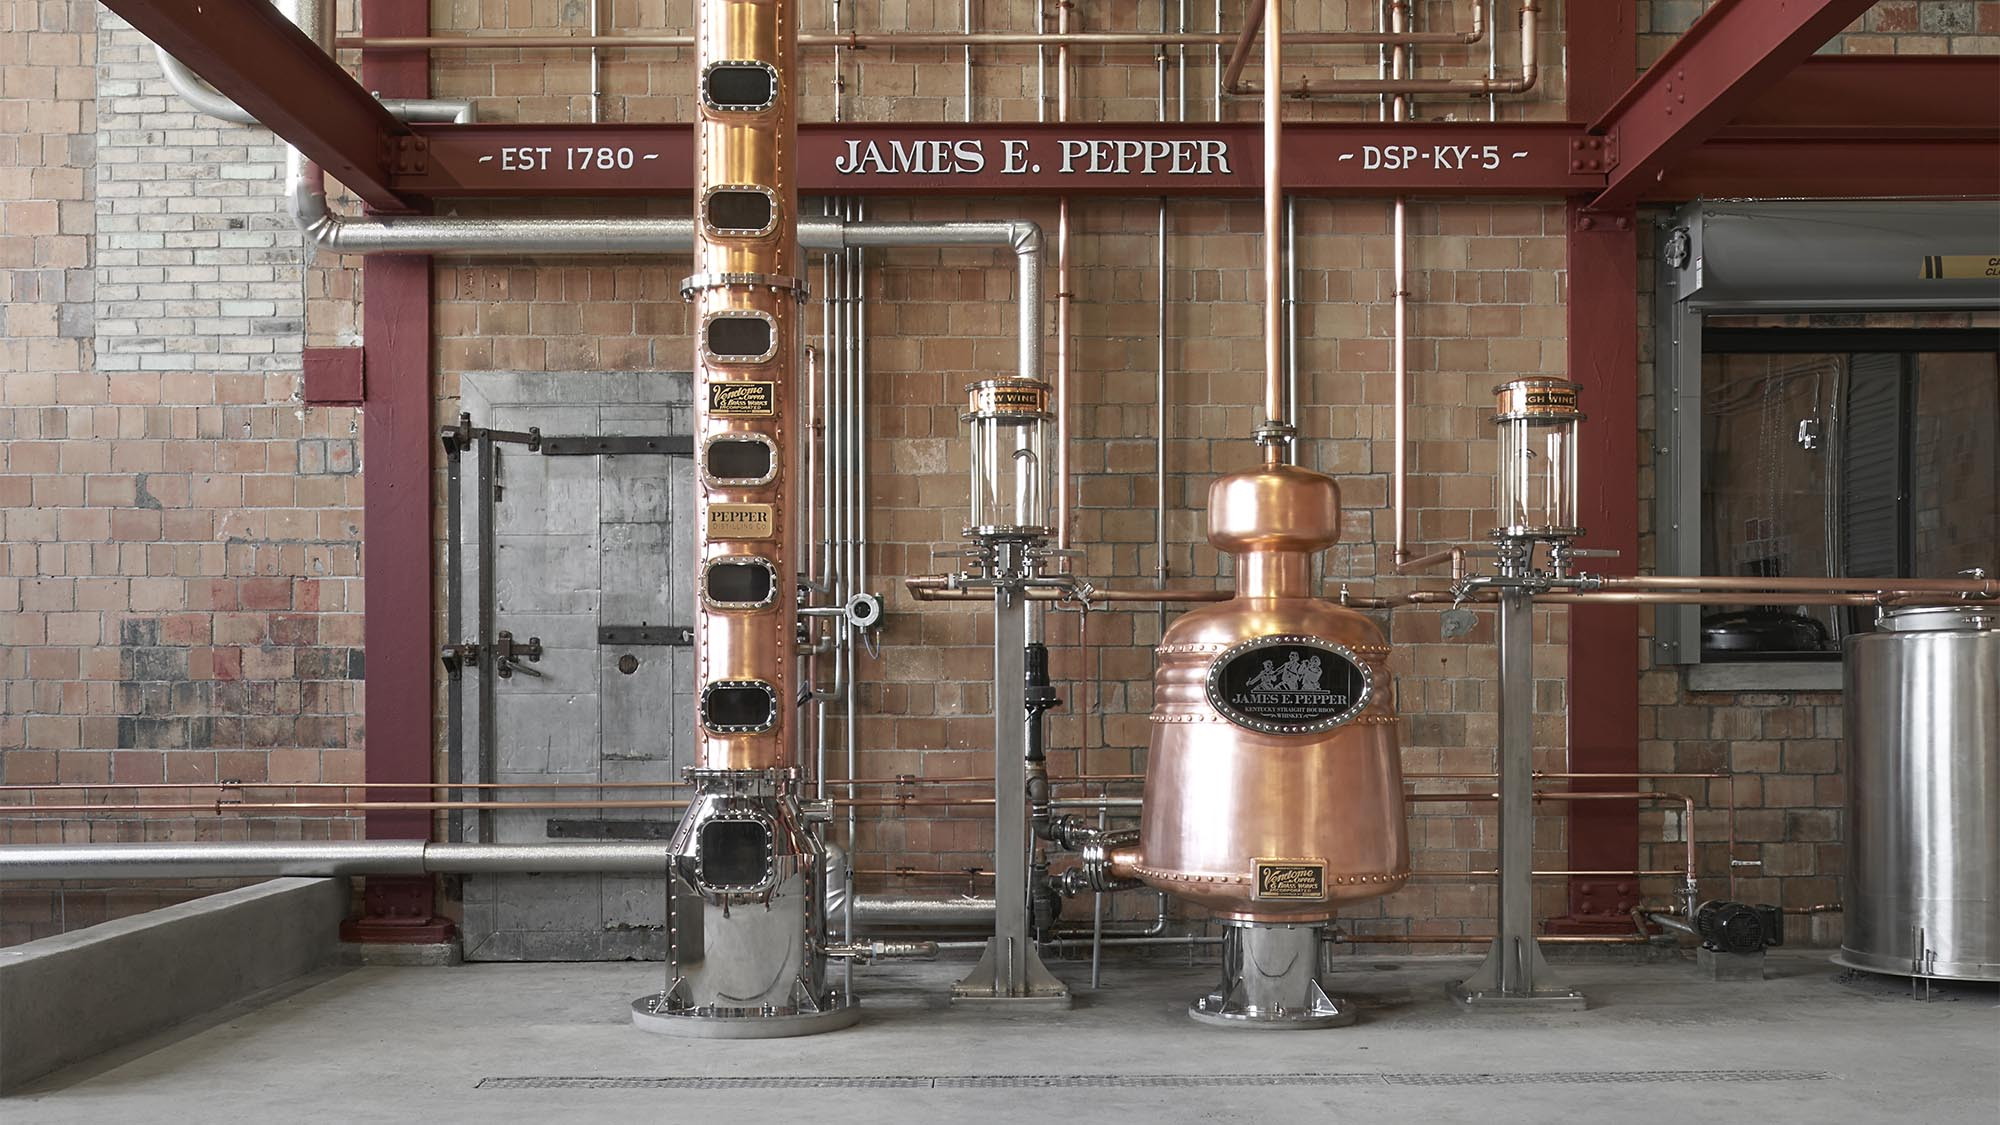 Copper stills at James E. Pepper - Distillery District - Town Branch Creek